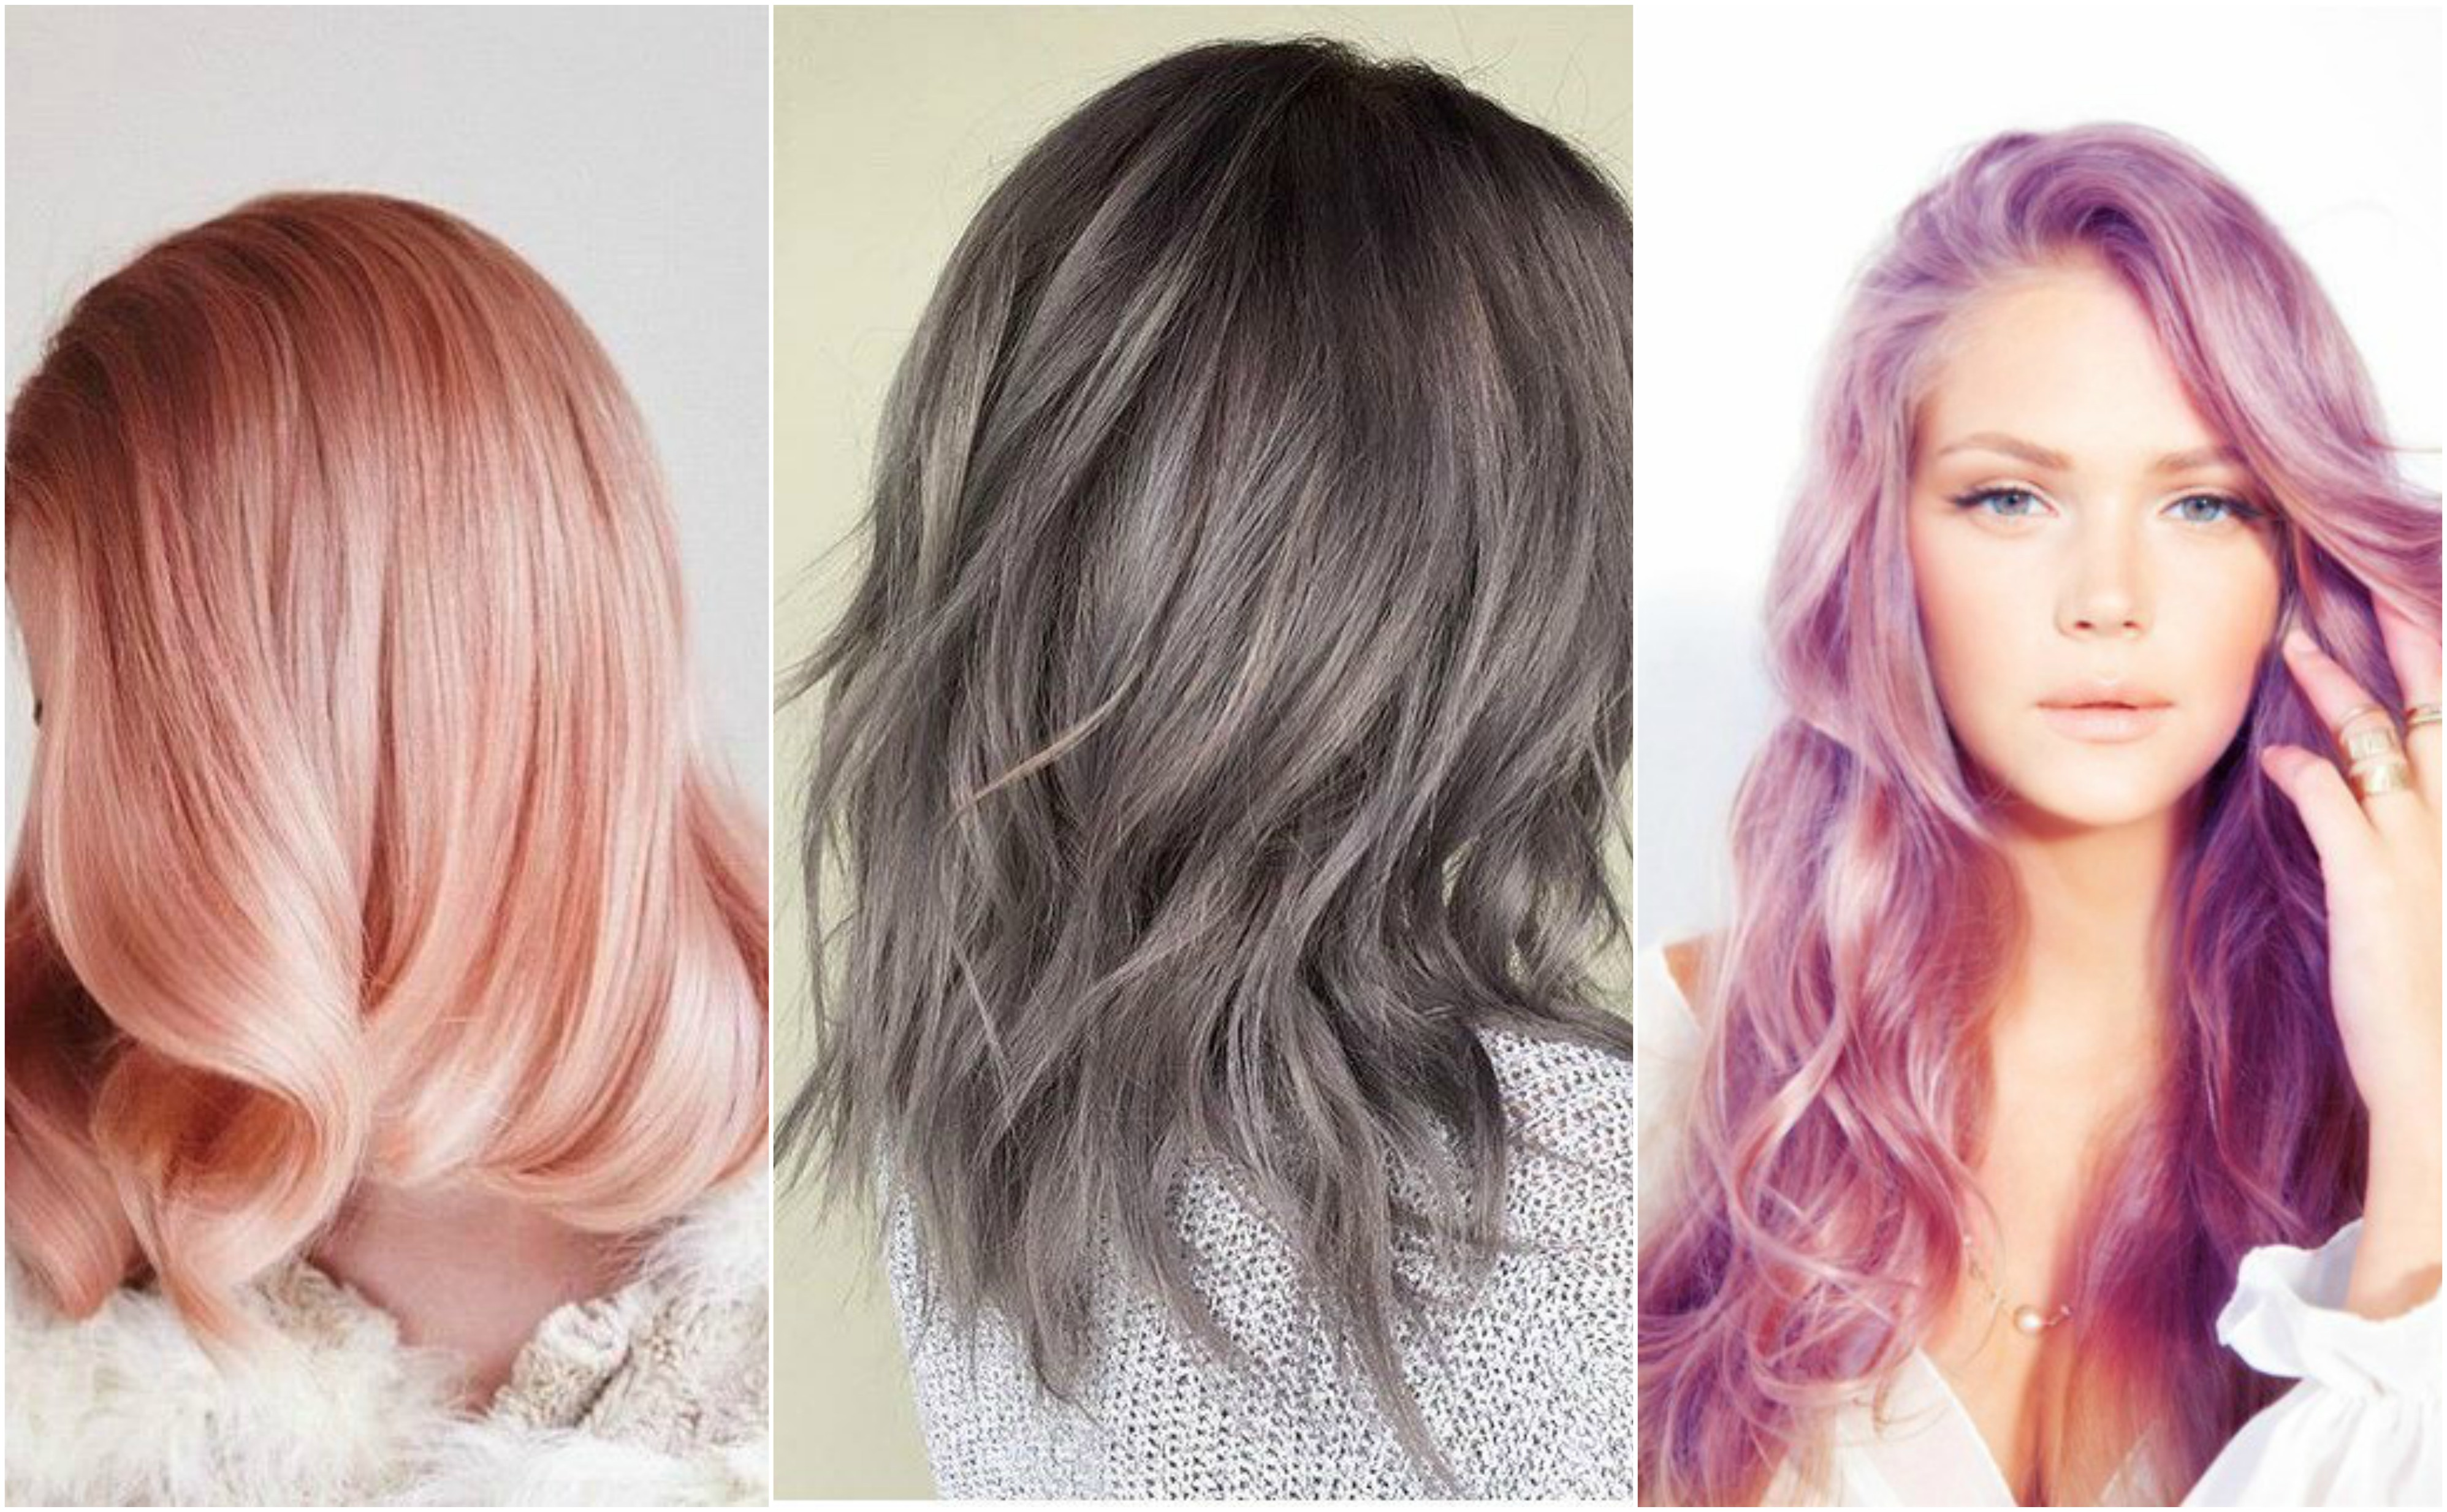 Everything you need to know about the metallic hair trend